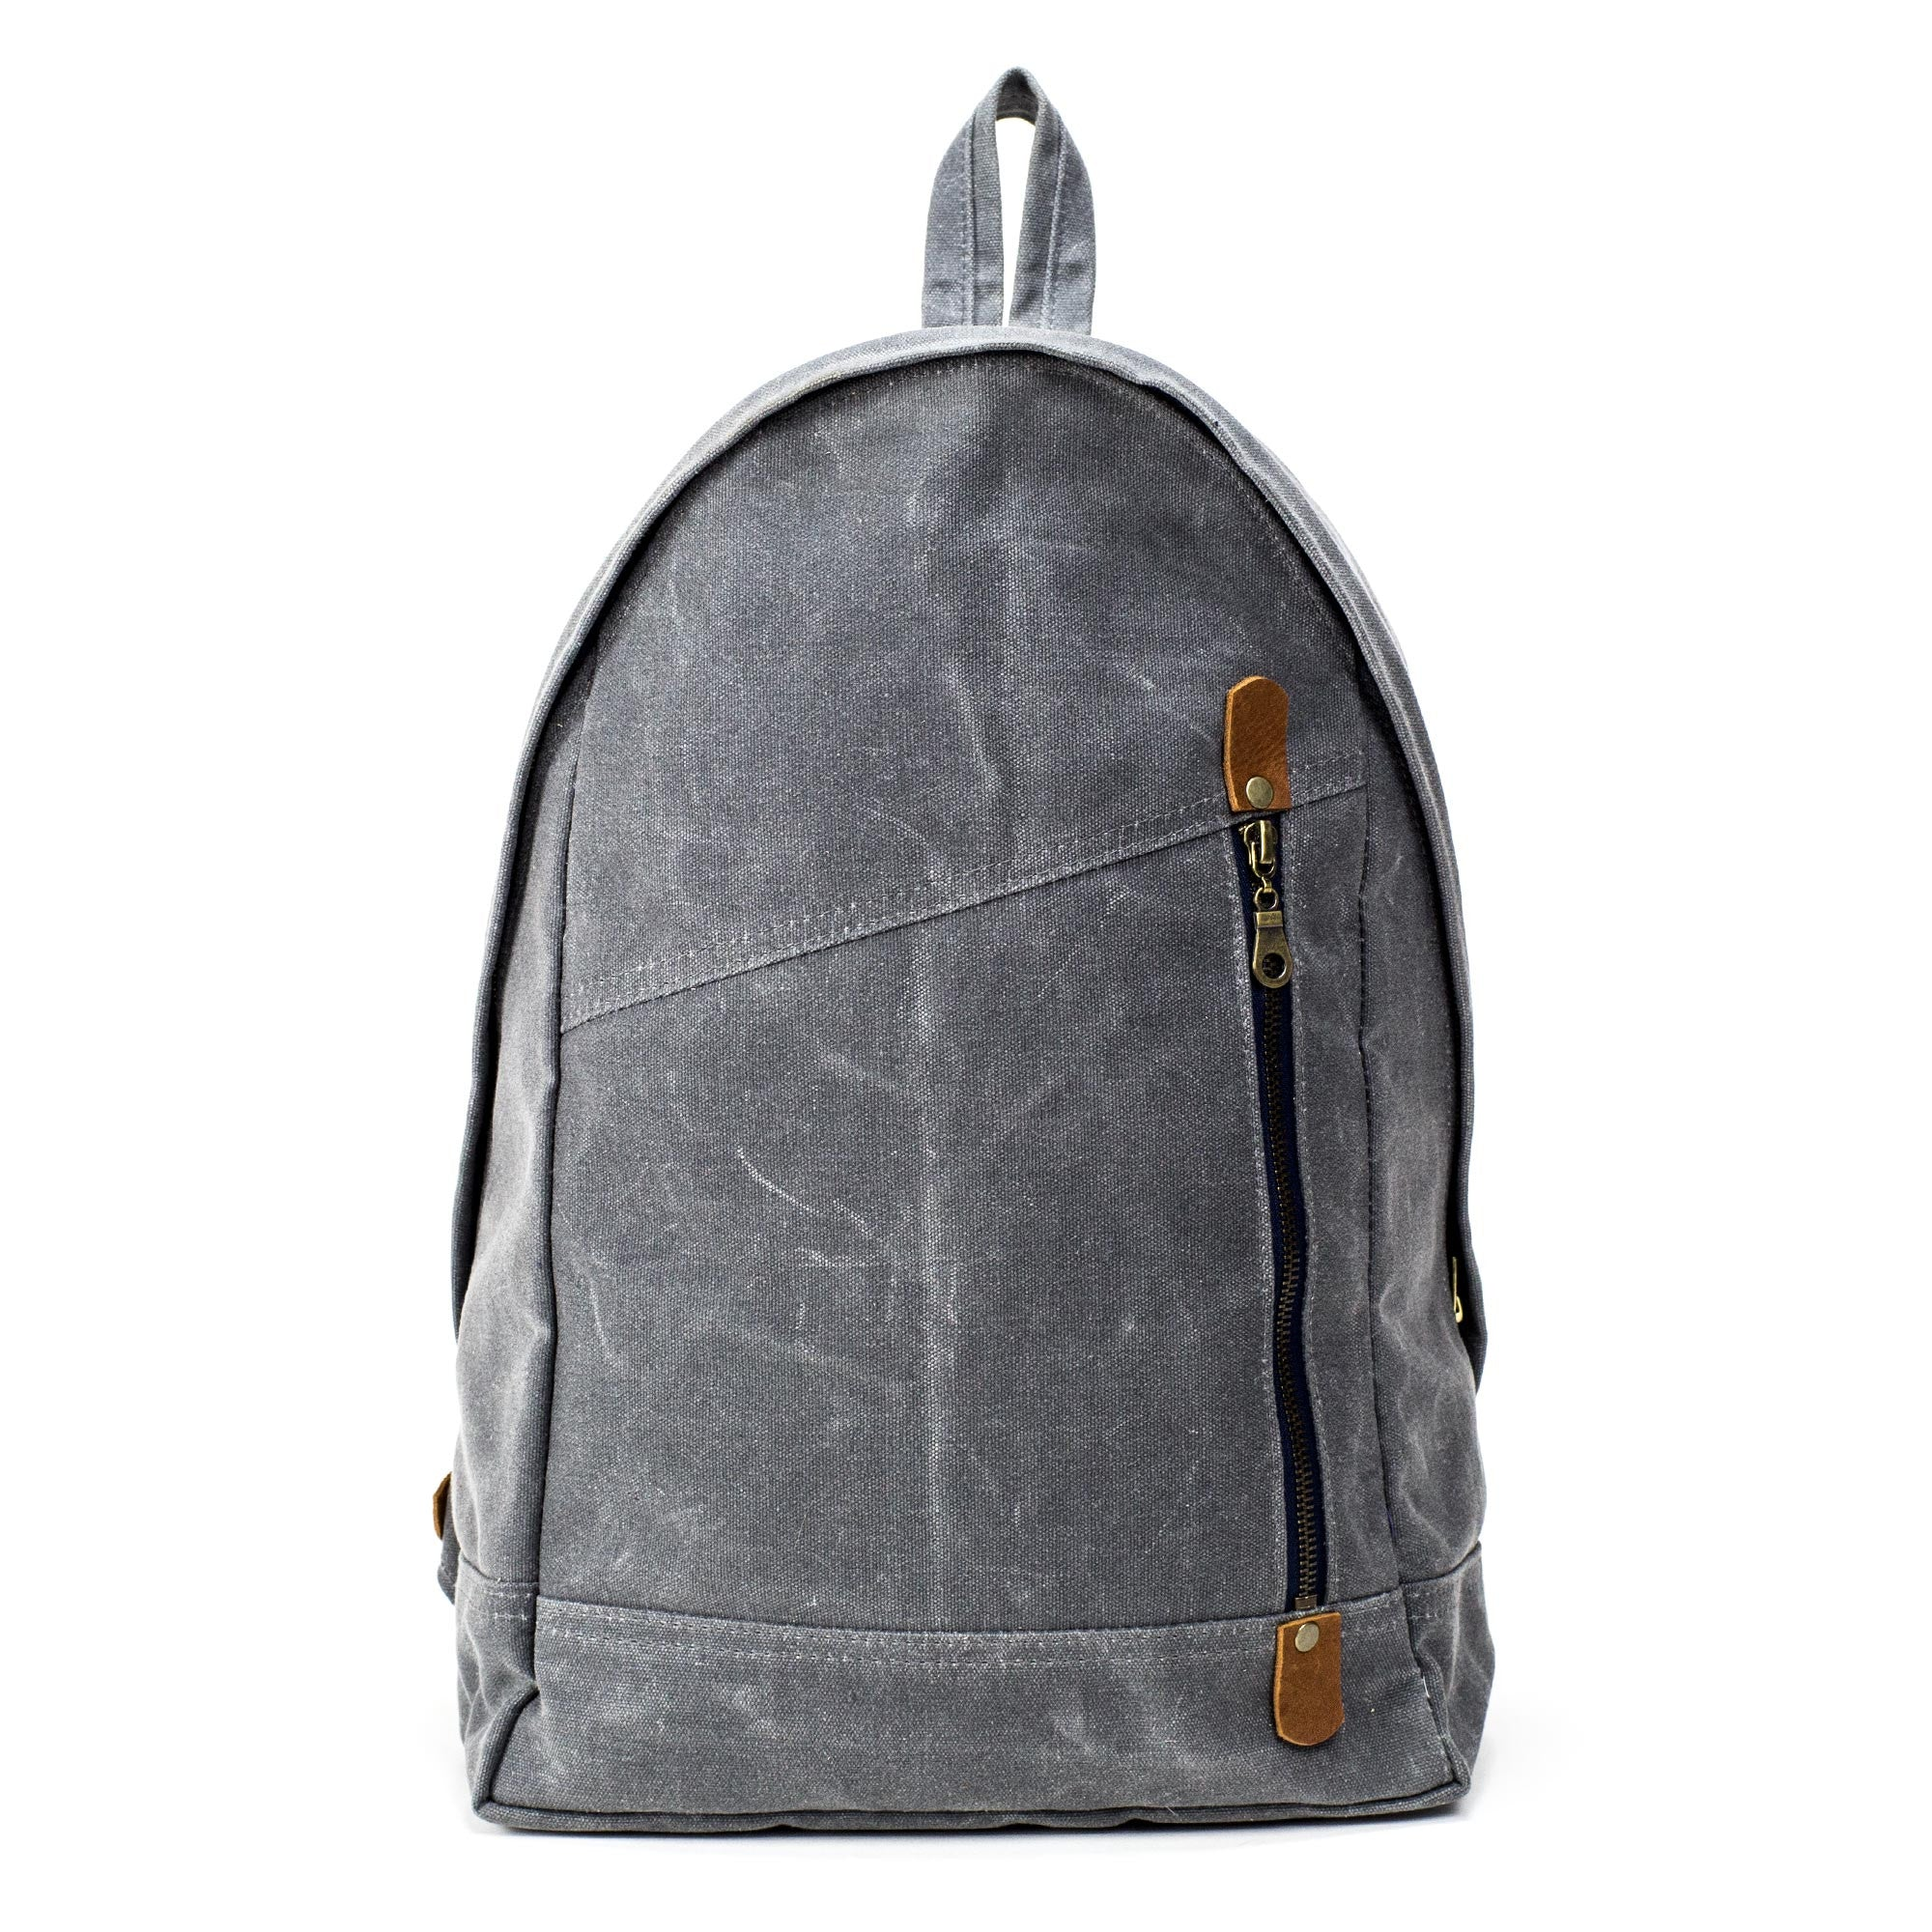 The Book Bag   Waxed Canvas Backpack - STONE   CLOTH abb388c5f0